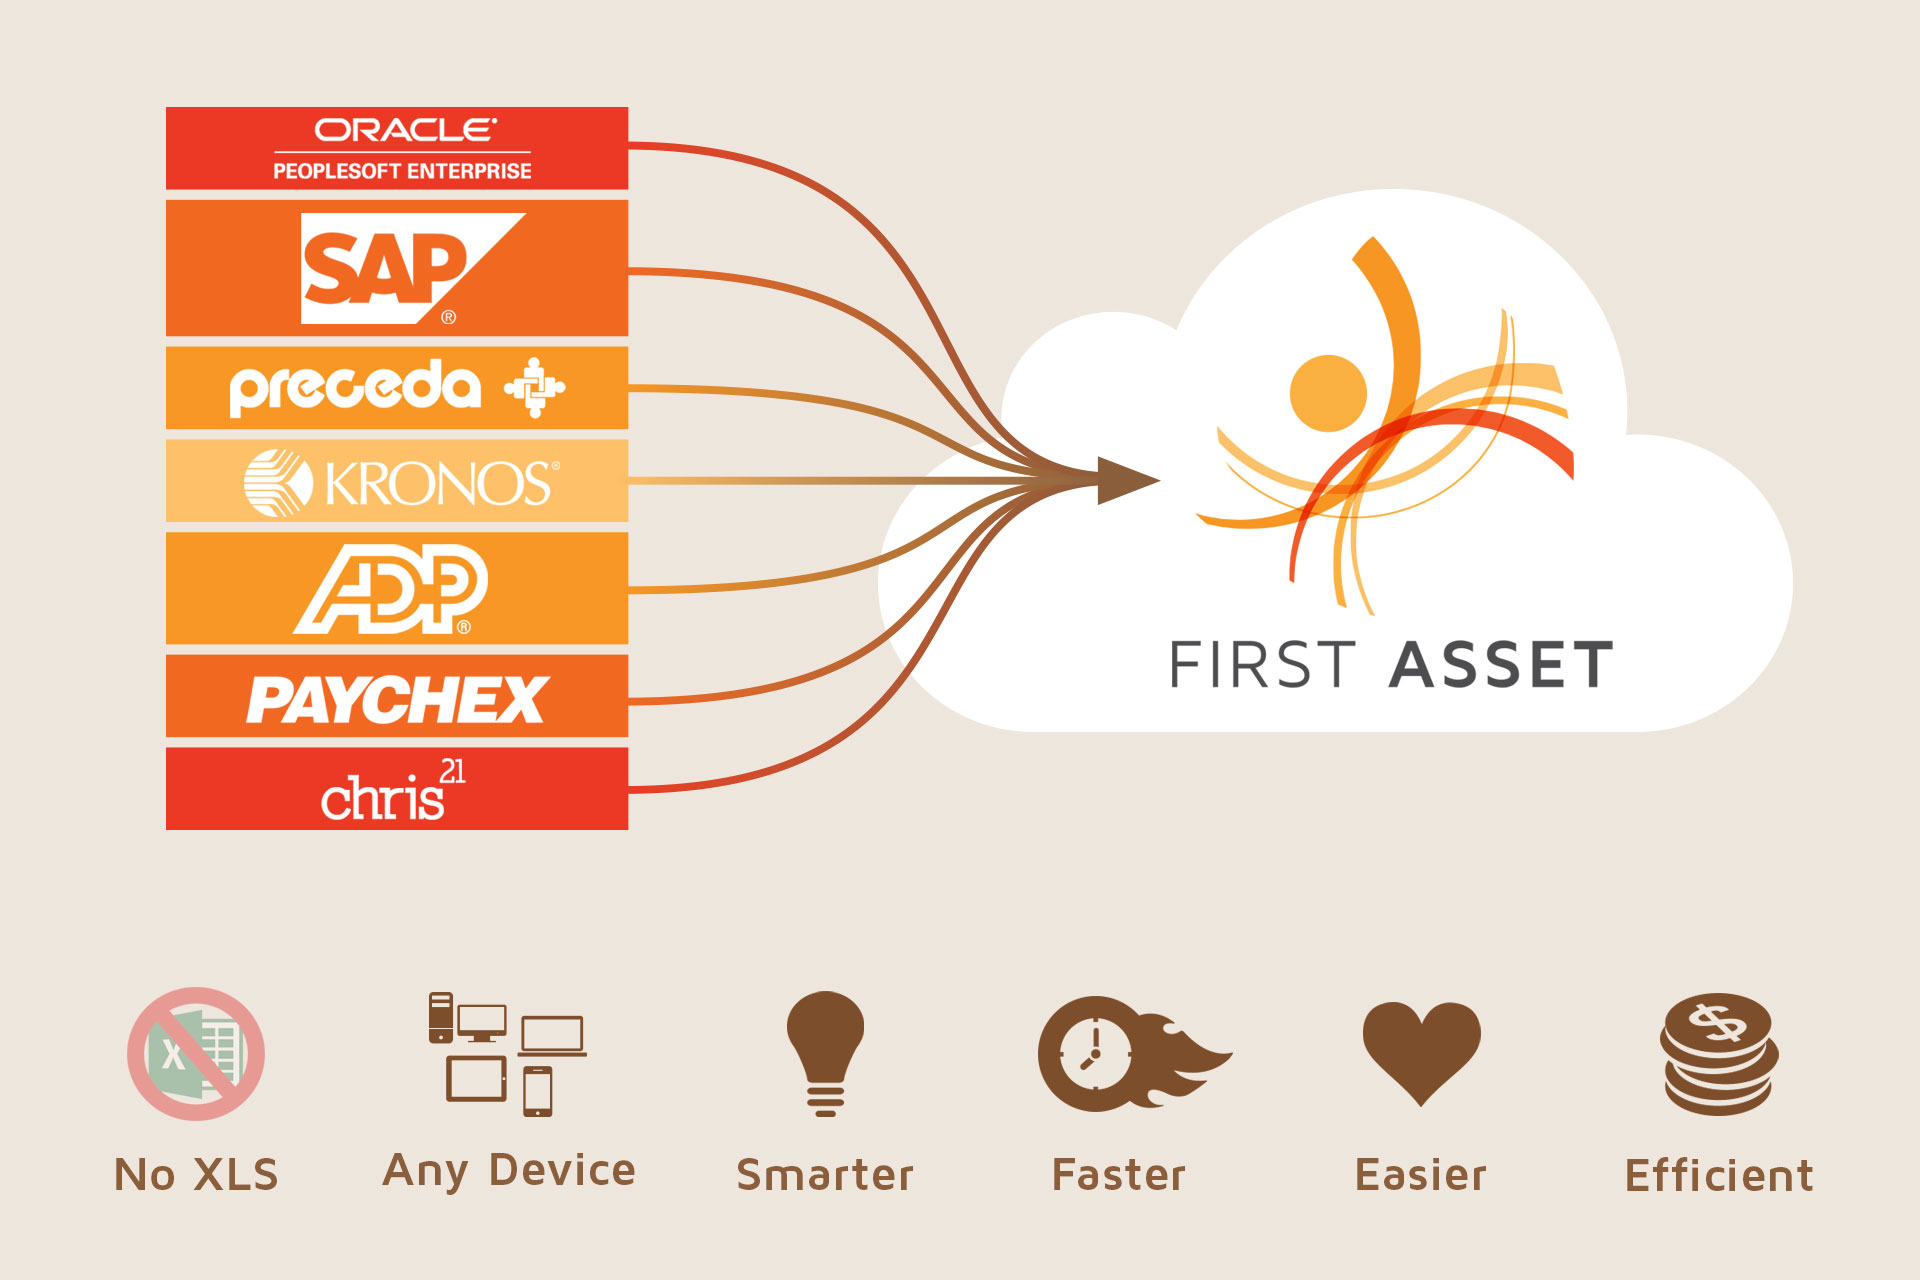 Diagram showing how First Asset unifies all HR data sources